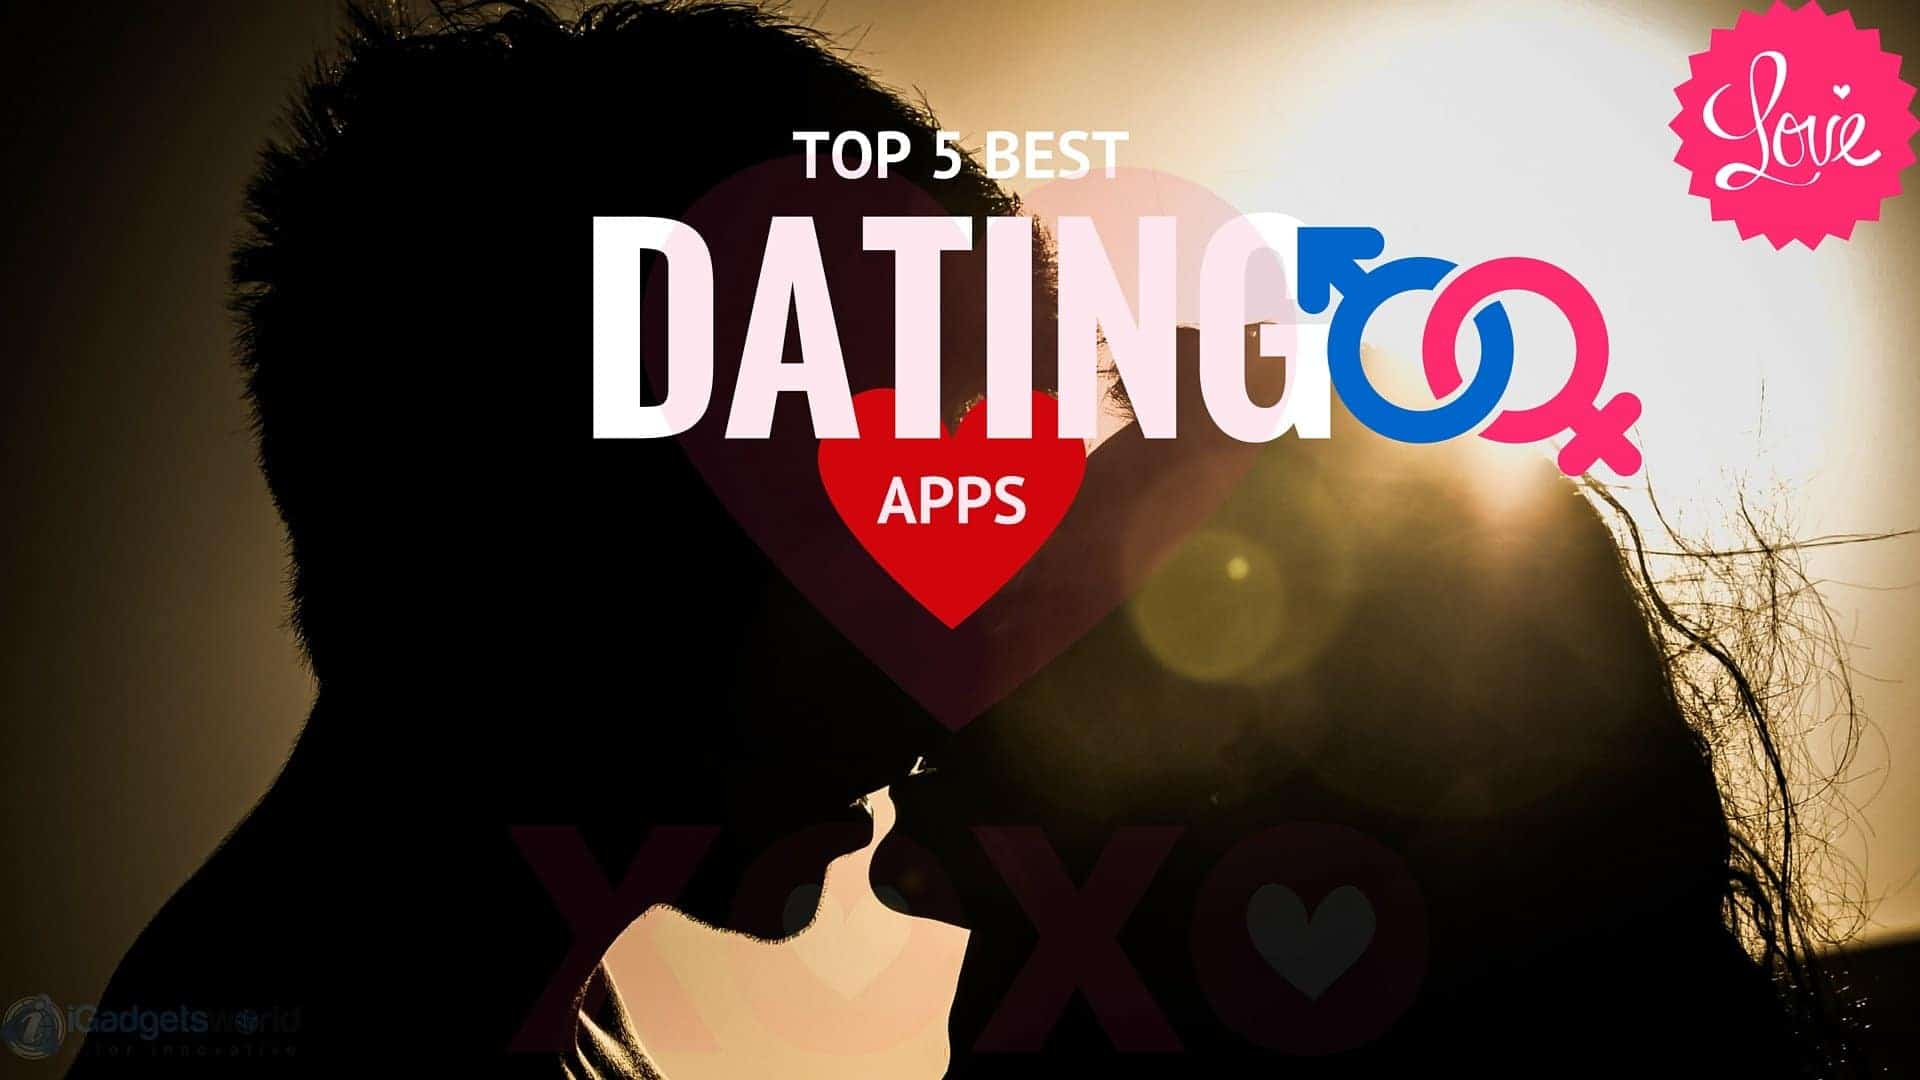 India's Best Dating Apps To Help You Find Love In 2016 | New Love ...